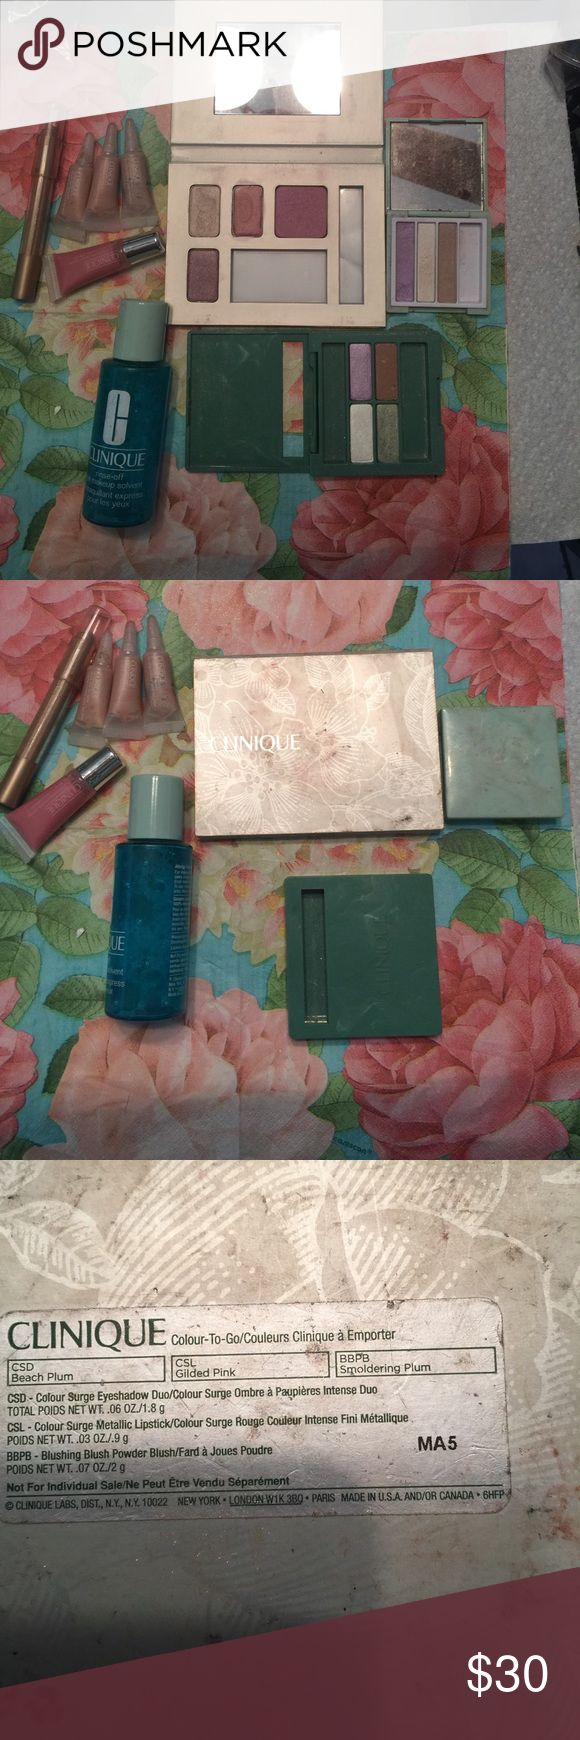 Clinique make up lot Lightly used Clinique make up lot 3 Clinique compacts w eyeshadows and 3 nude sparkle liquid eyeshadows 1 mini lipgloss 1 gold eyeliner/ shadow 1 eye makeup remover Clinique Makeup Eyeshadow